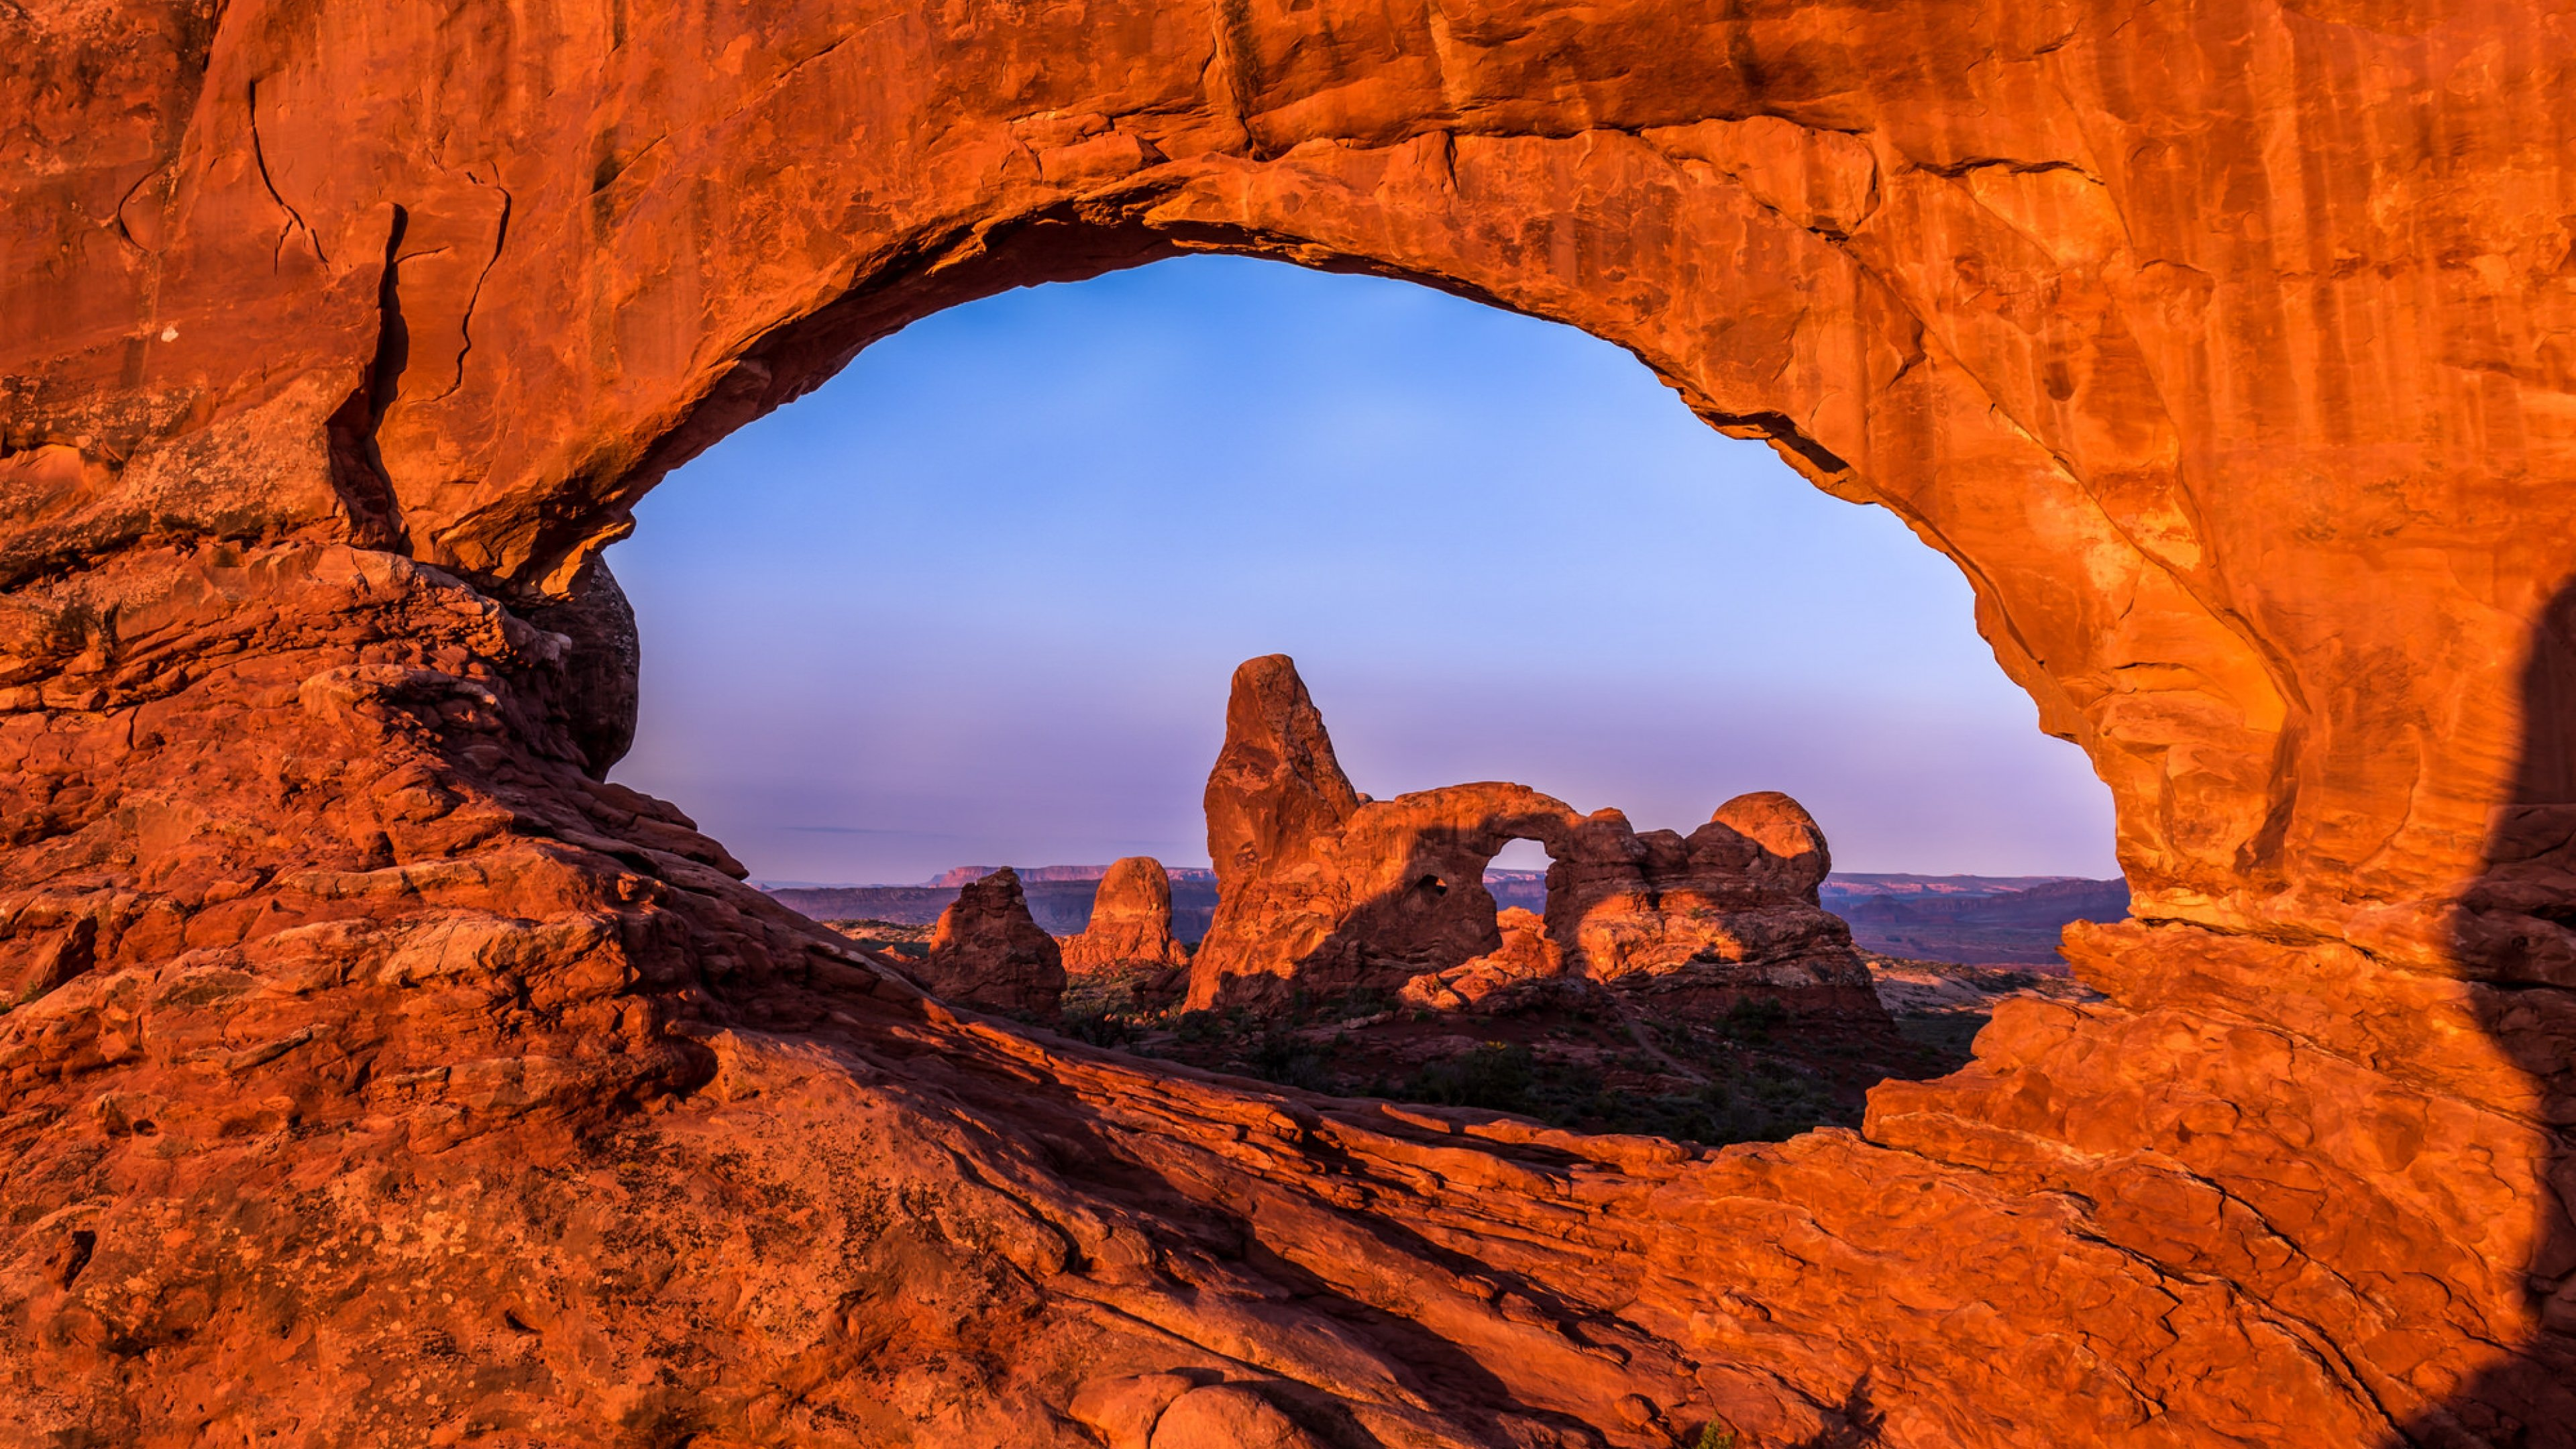 Sunset view of Arches National Park through an archway